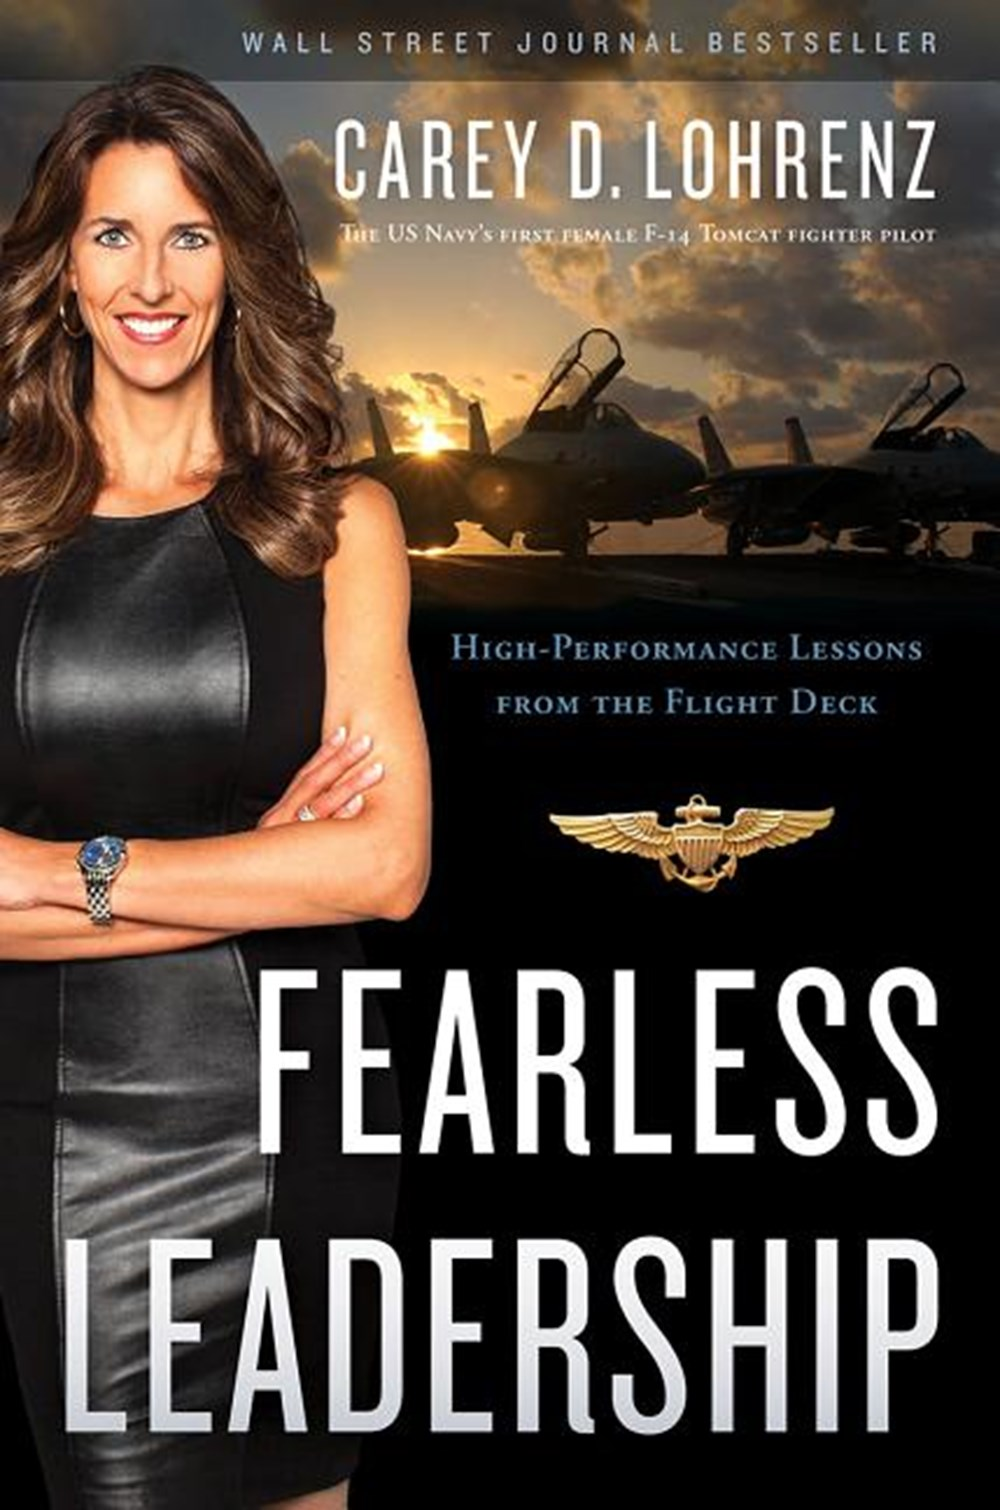 Fearless Leadership High-Performance Lessons from the Flight Deck